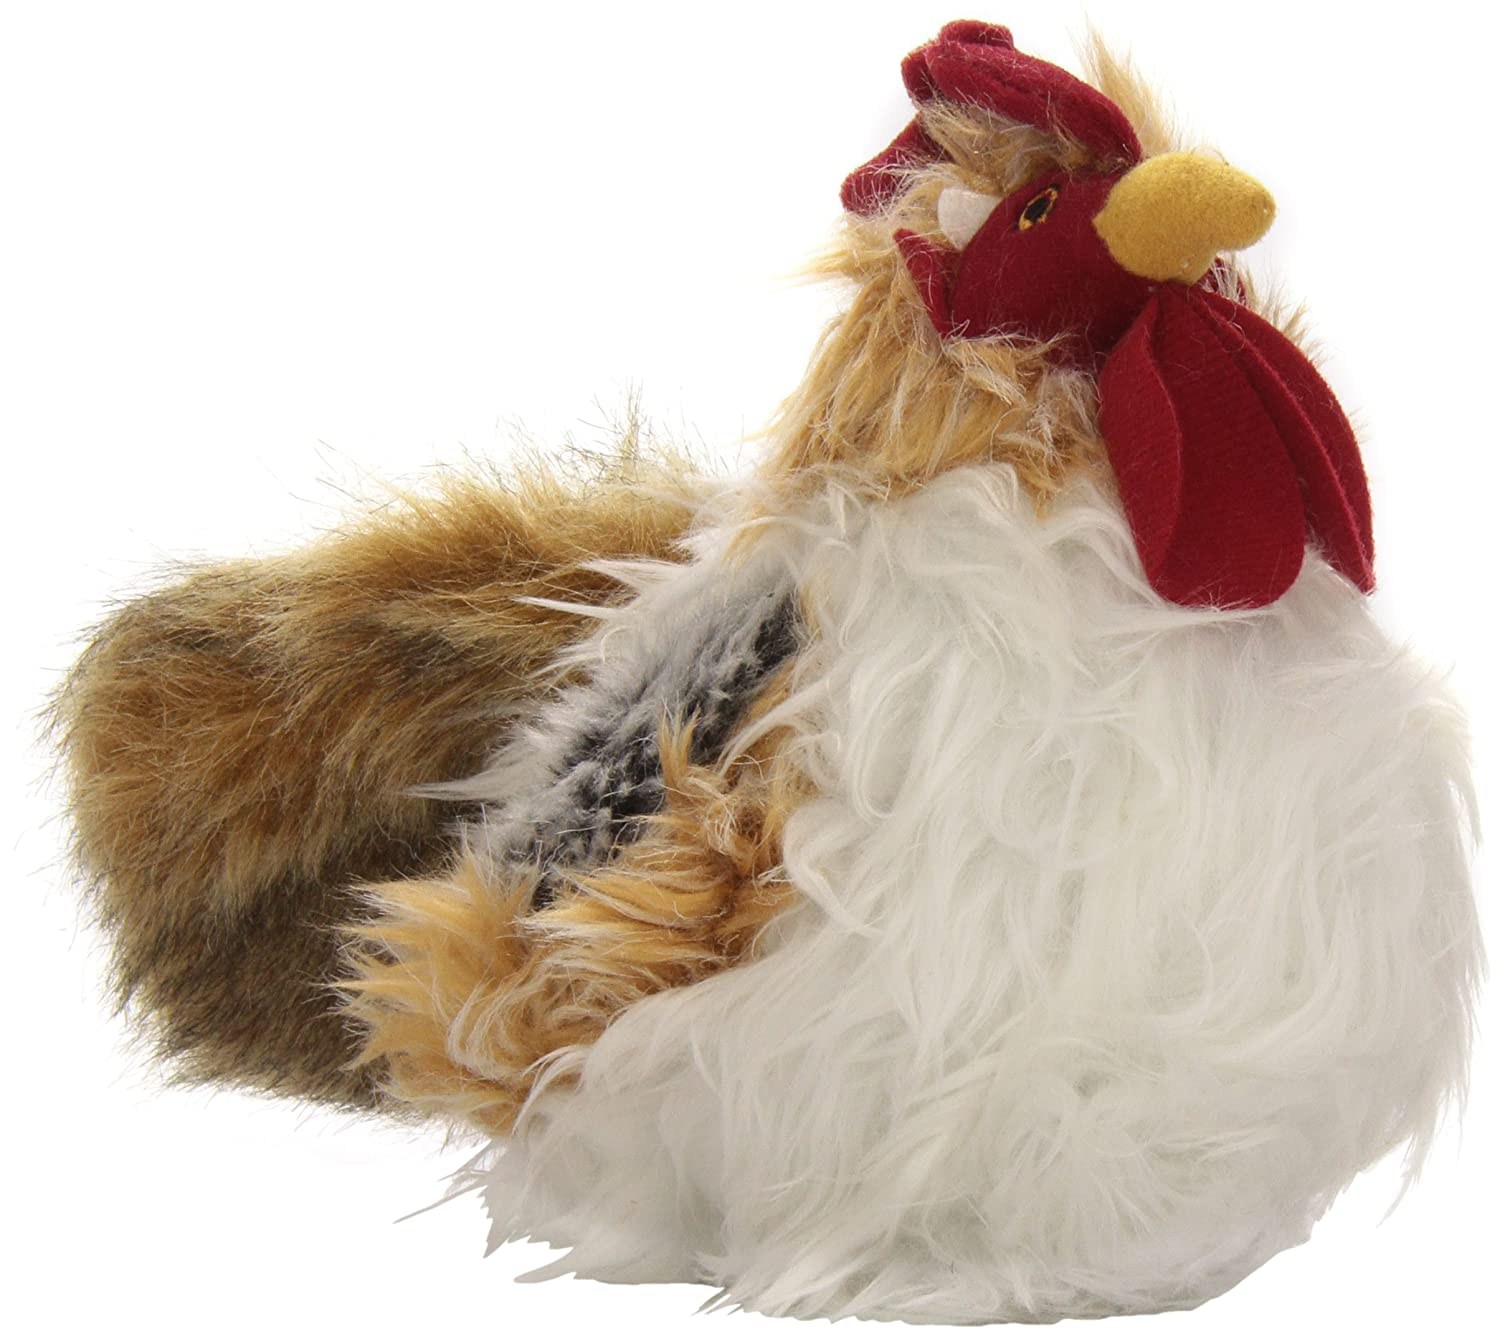 goDog Rooster Ball Dog Toy with Chew Guard Technology